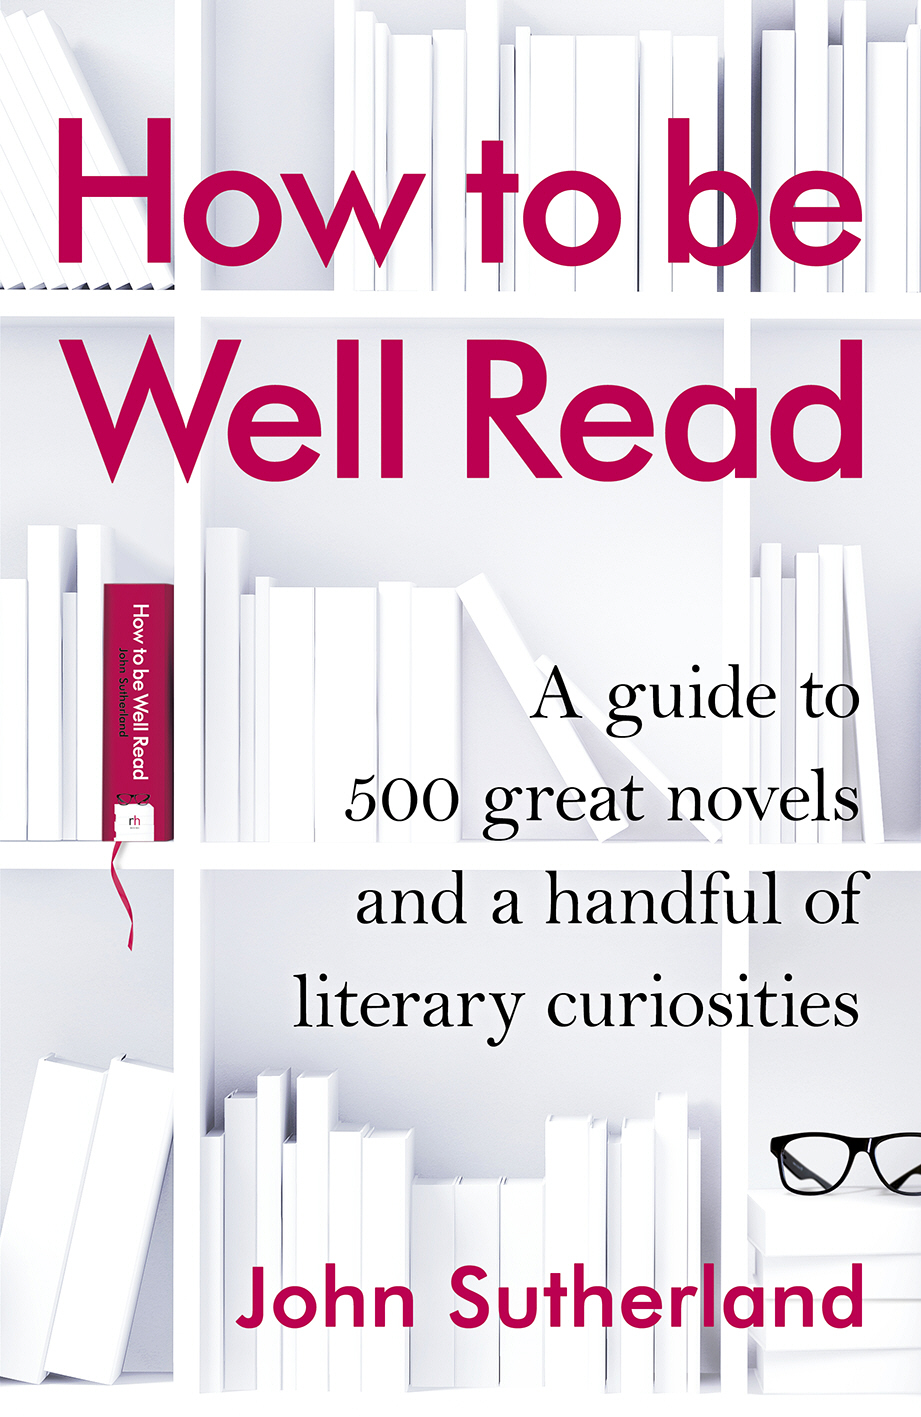 How to be Well Read A guide to 500 great novels and a handful of literary curiosities